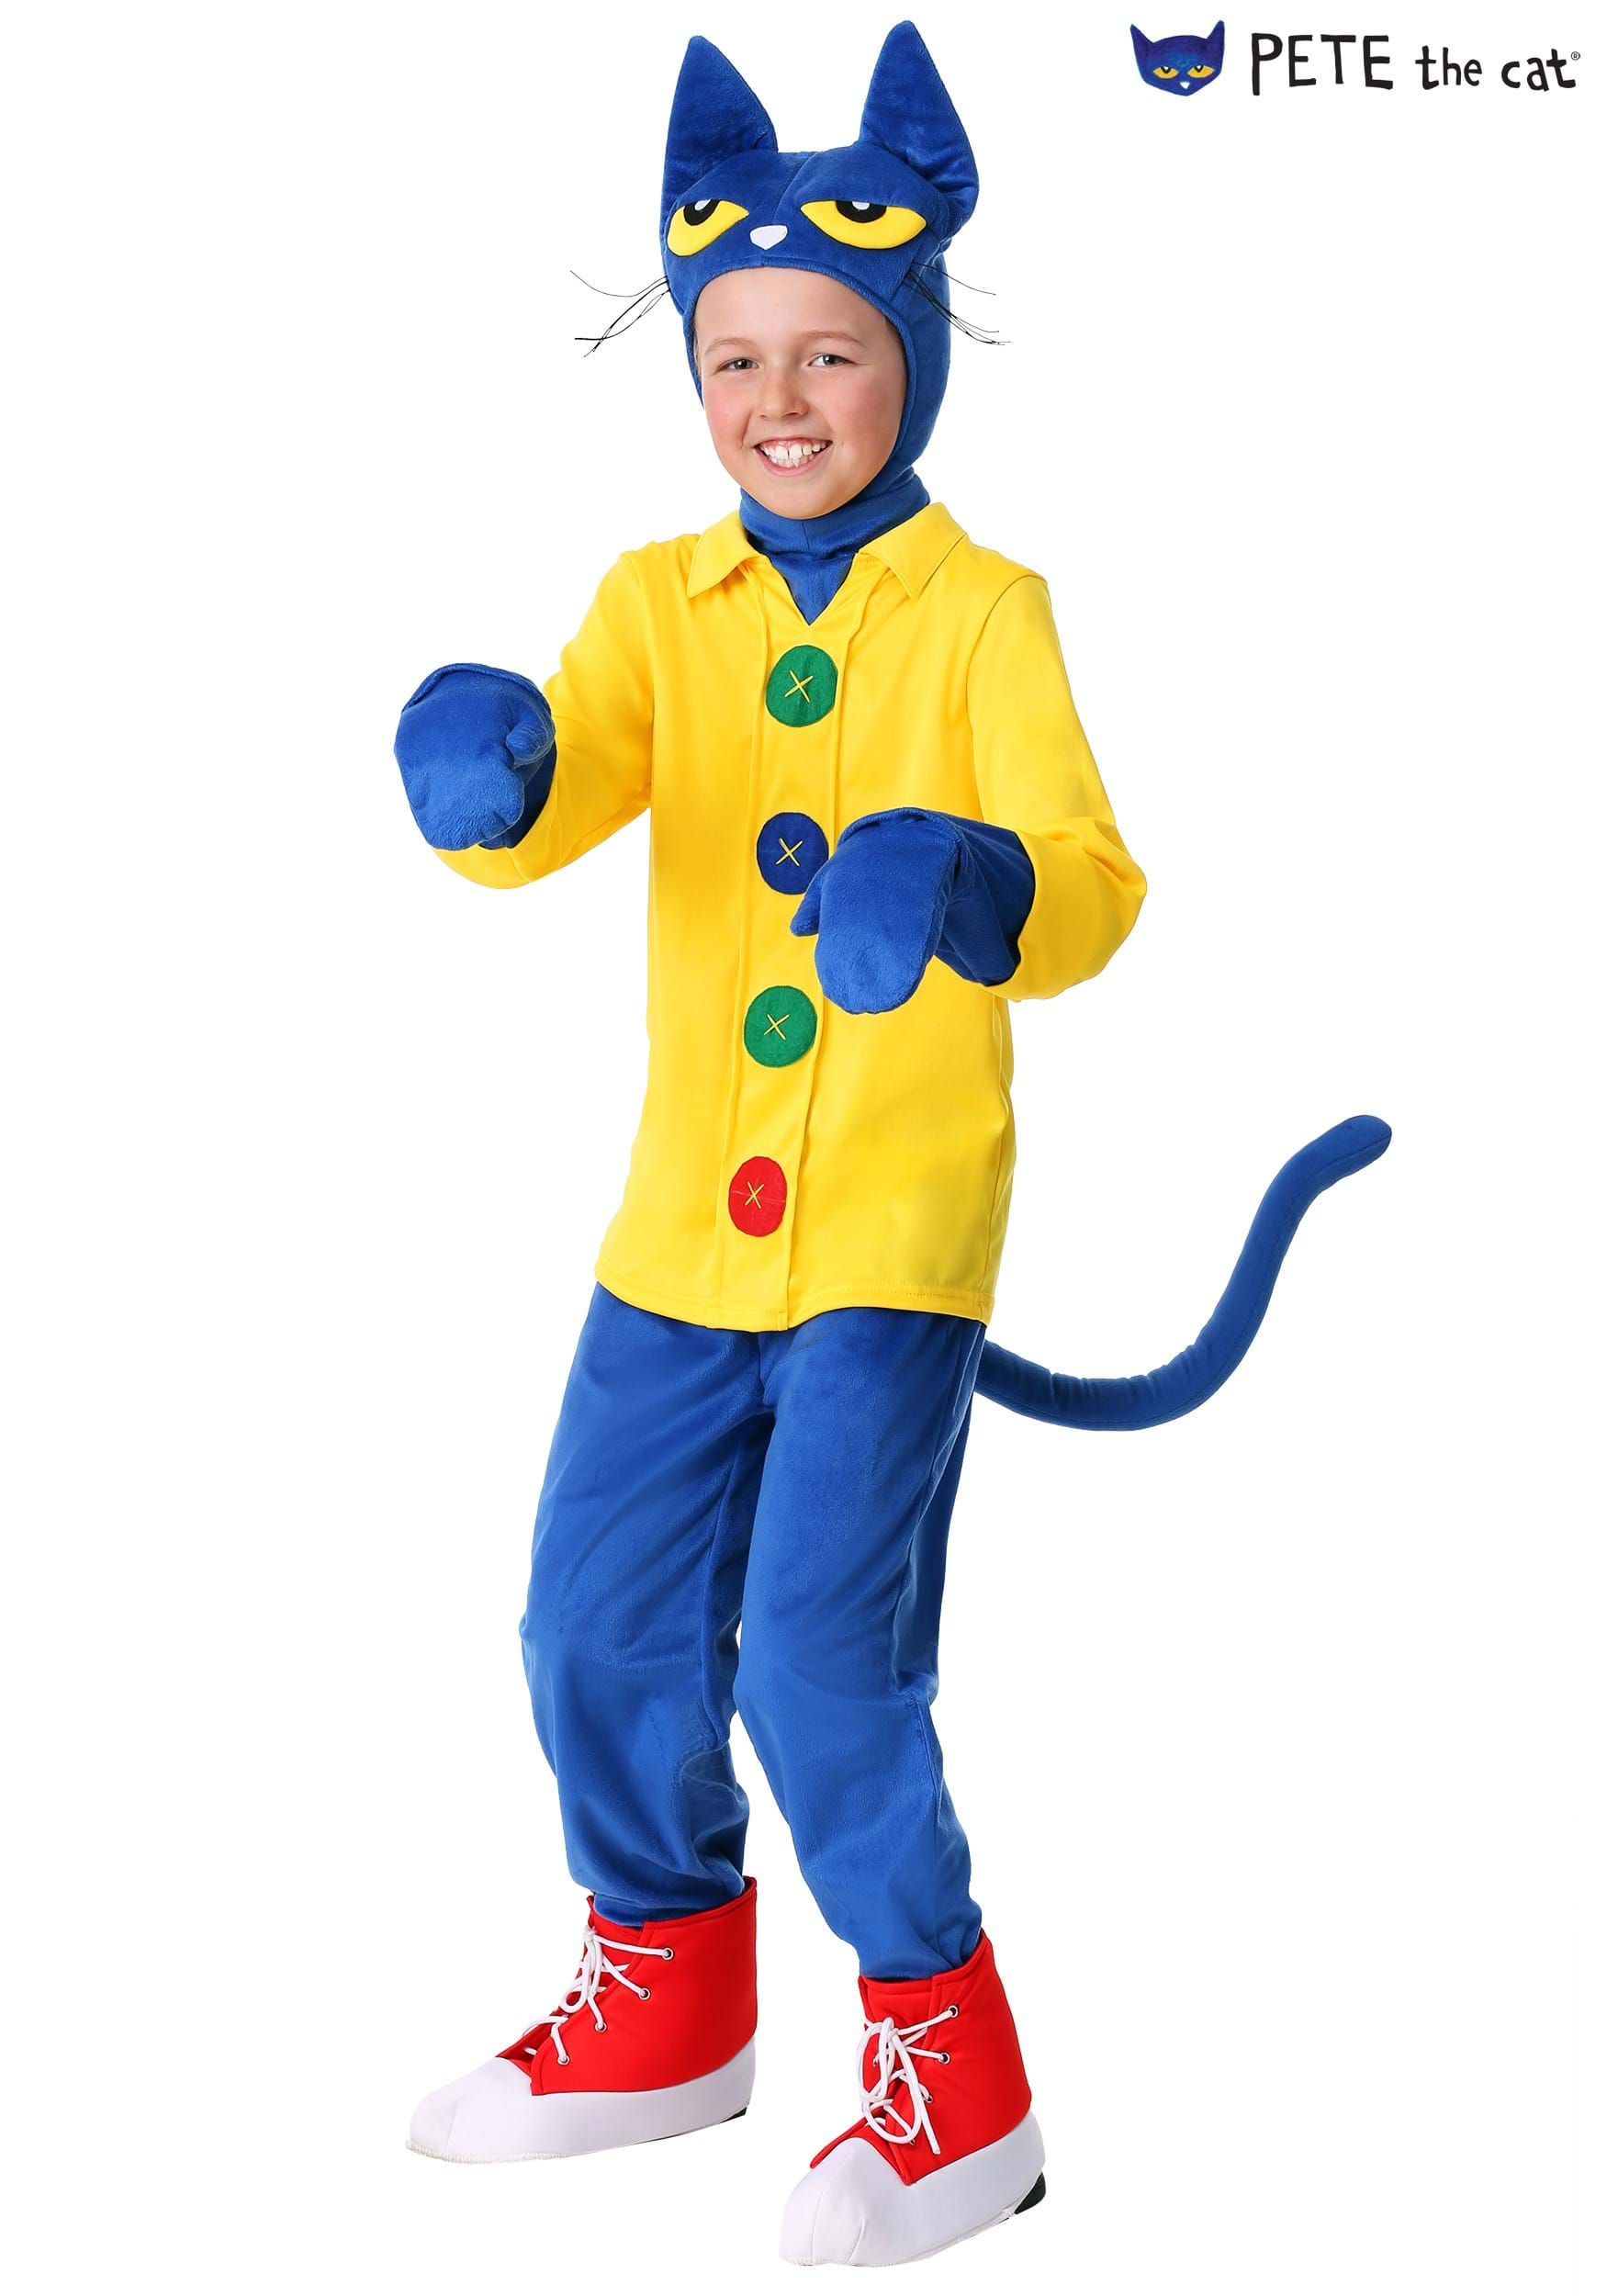 pete the cat costume for a child